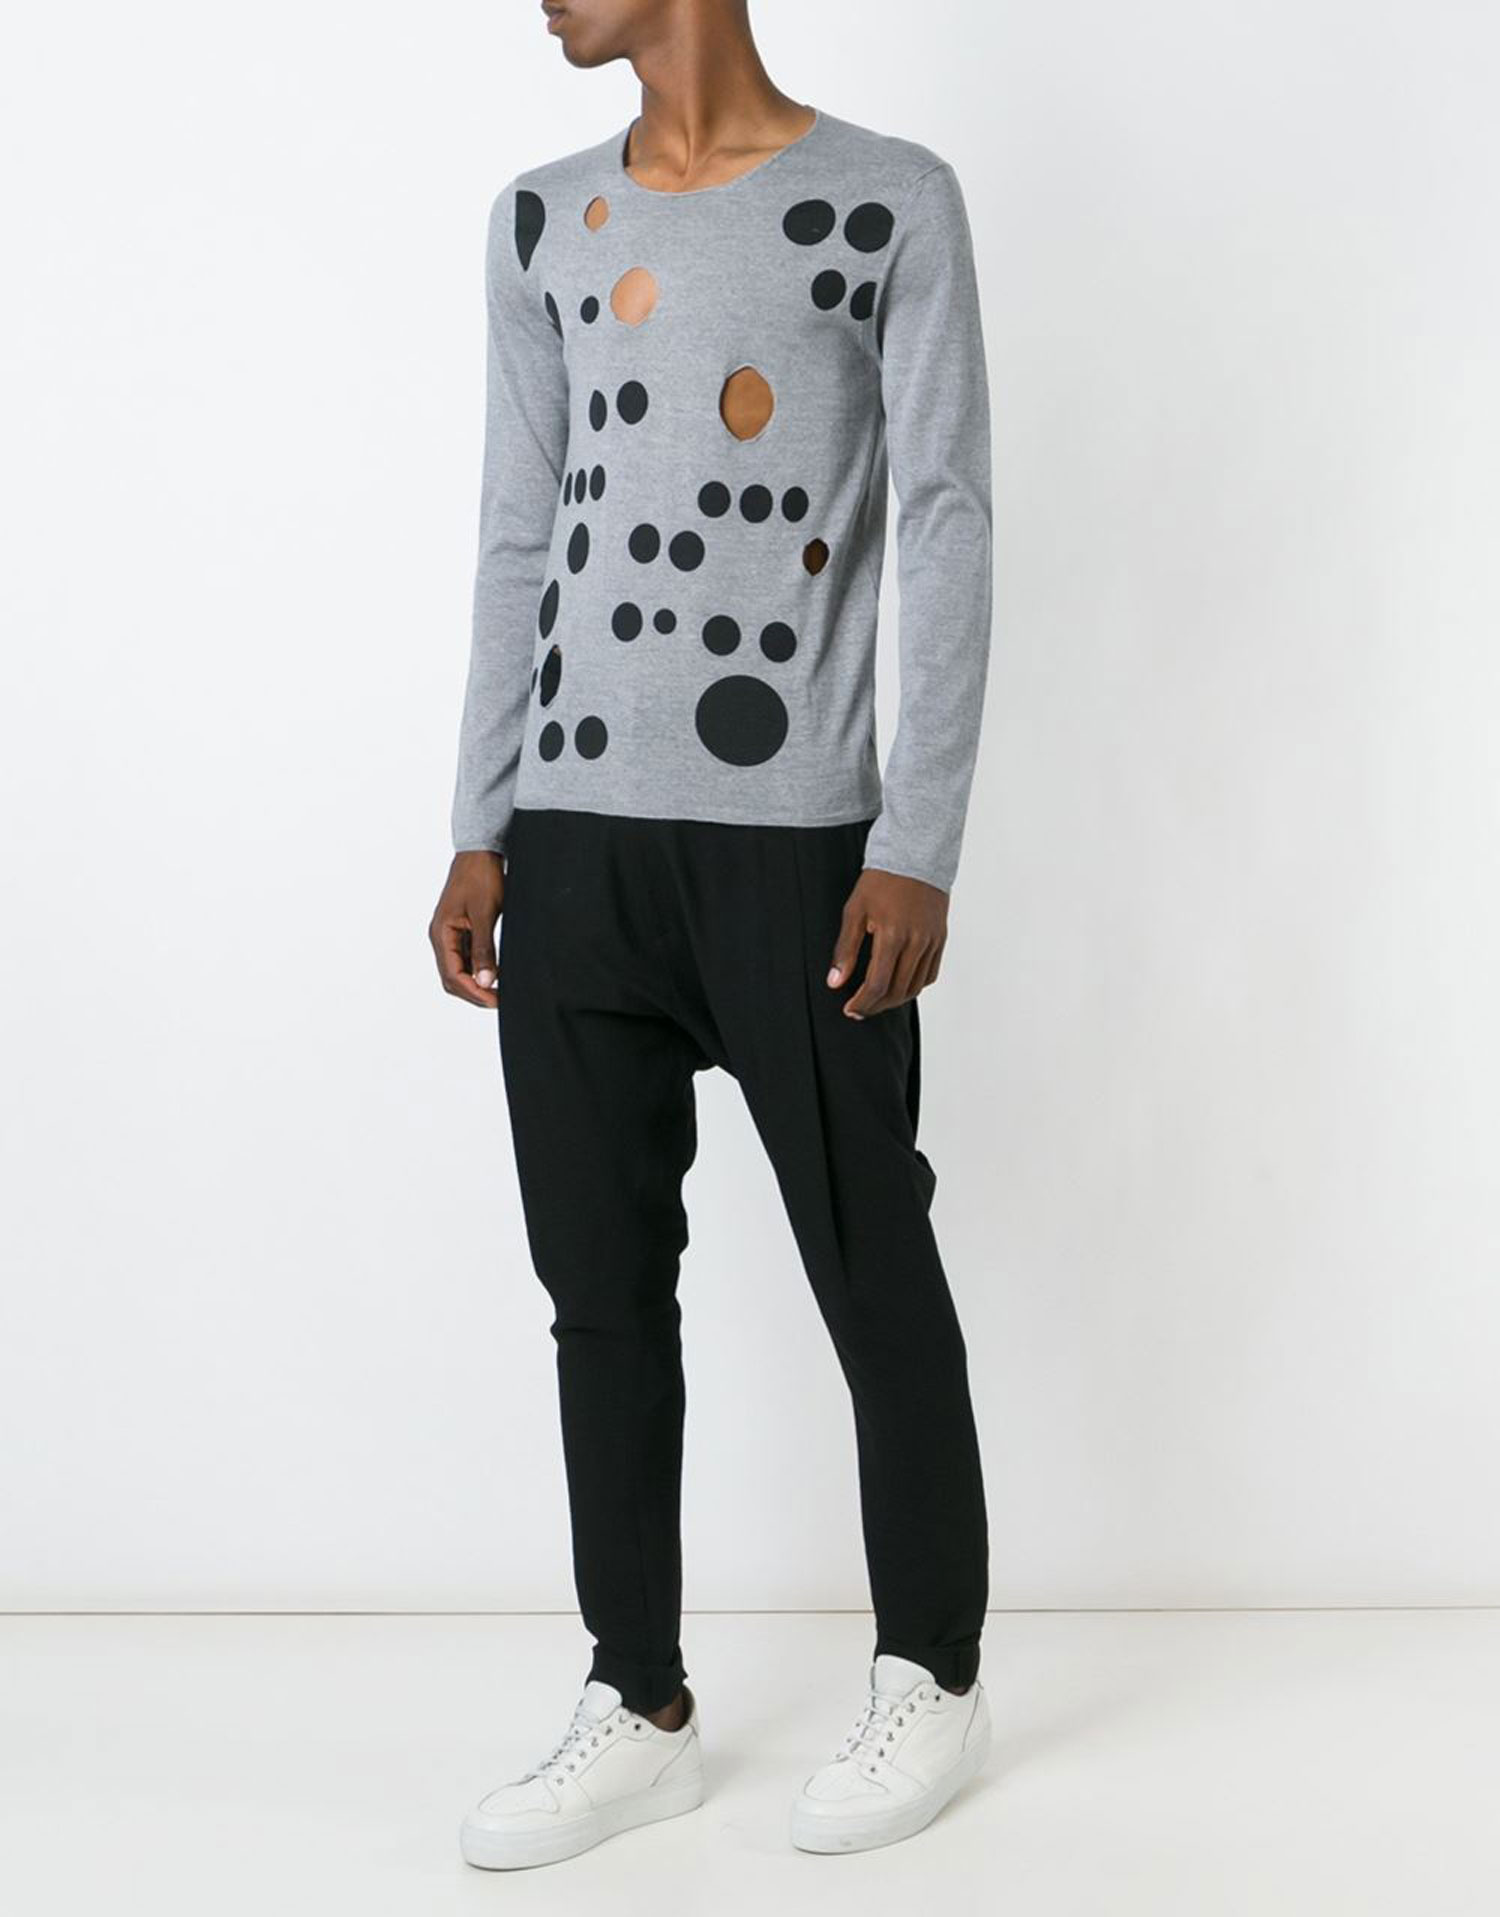 Trend-Lasercut-Herrenmode-Cut-Out-Fashion-Pullover-Cut-Outs